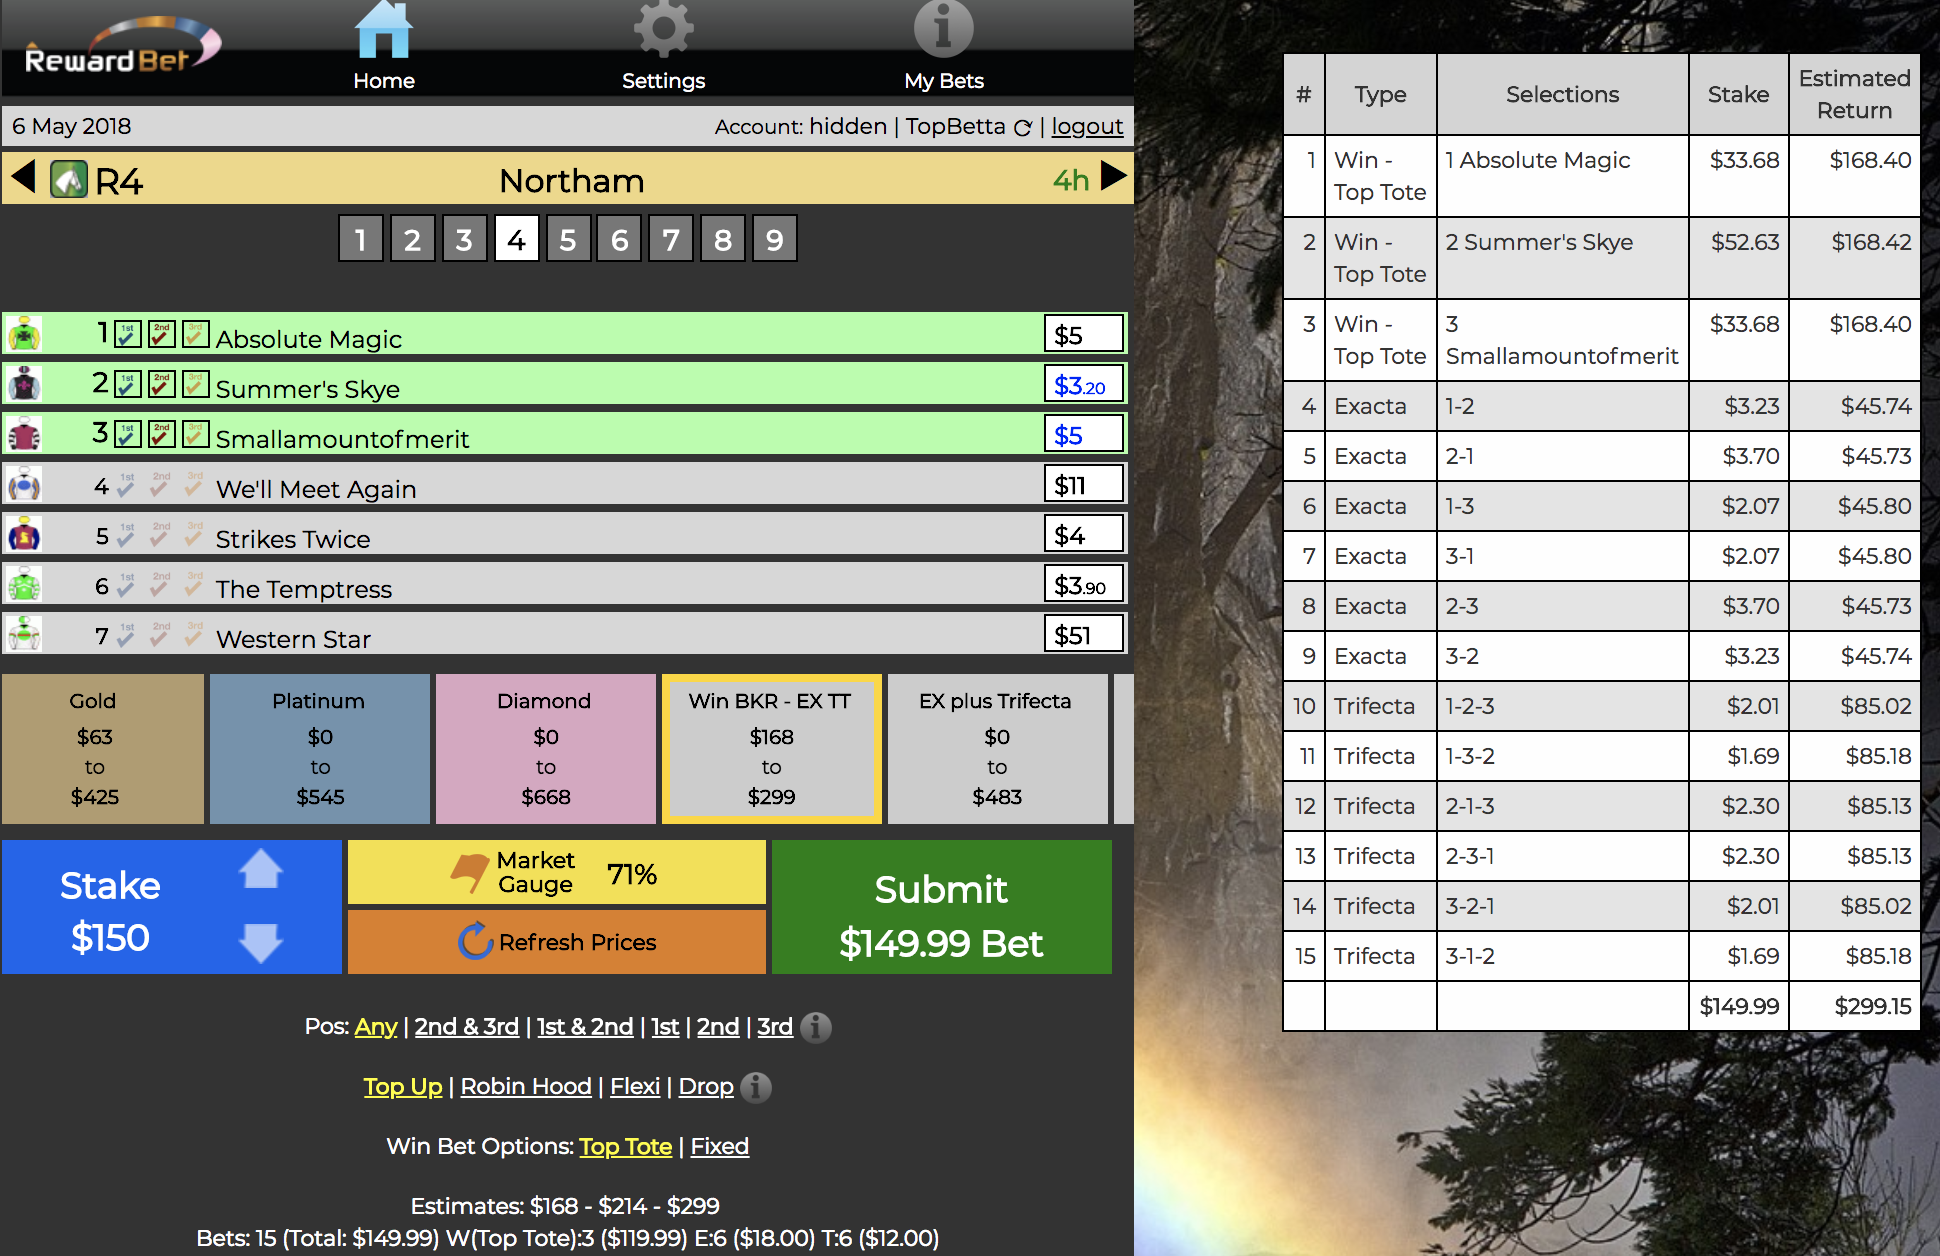 Northam R4  - Three selections #1 #2 ($3.20) #3 ($5) with  Edit Prices enabled  for $150 in a Win / Ex / TT Custom Level.  I think these are the three here, but I don't think the market prices are right. So I've used  Edit Prices feature  to adjust the prices, this will result in potentially higher returns if we are right.  Result: 4-7- 2 . Our Summer Skye, was the best supported but we got nutted by both outsiders! Hello, WA Racing!  Outlay: $150. Return: NIL. Loss: $150.